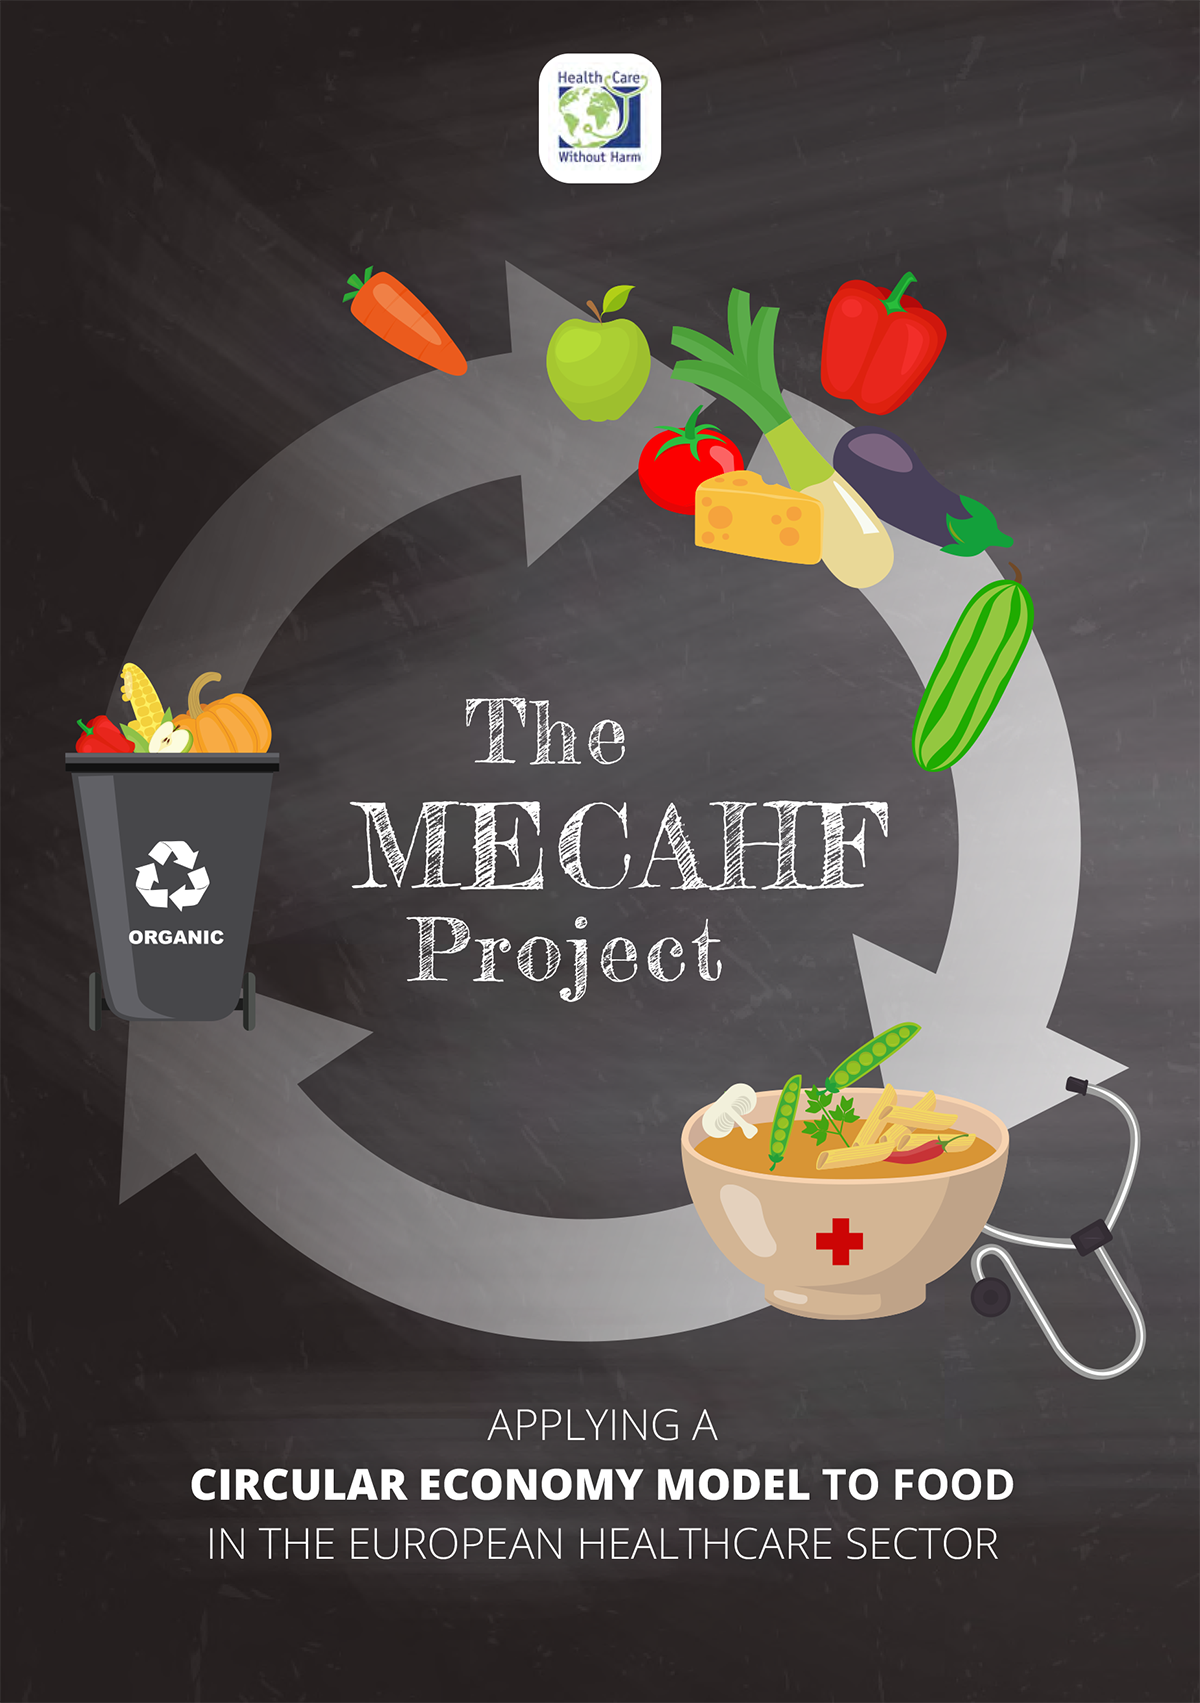 the MECAHF project report